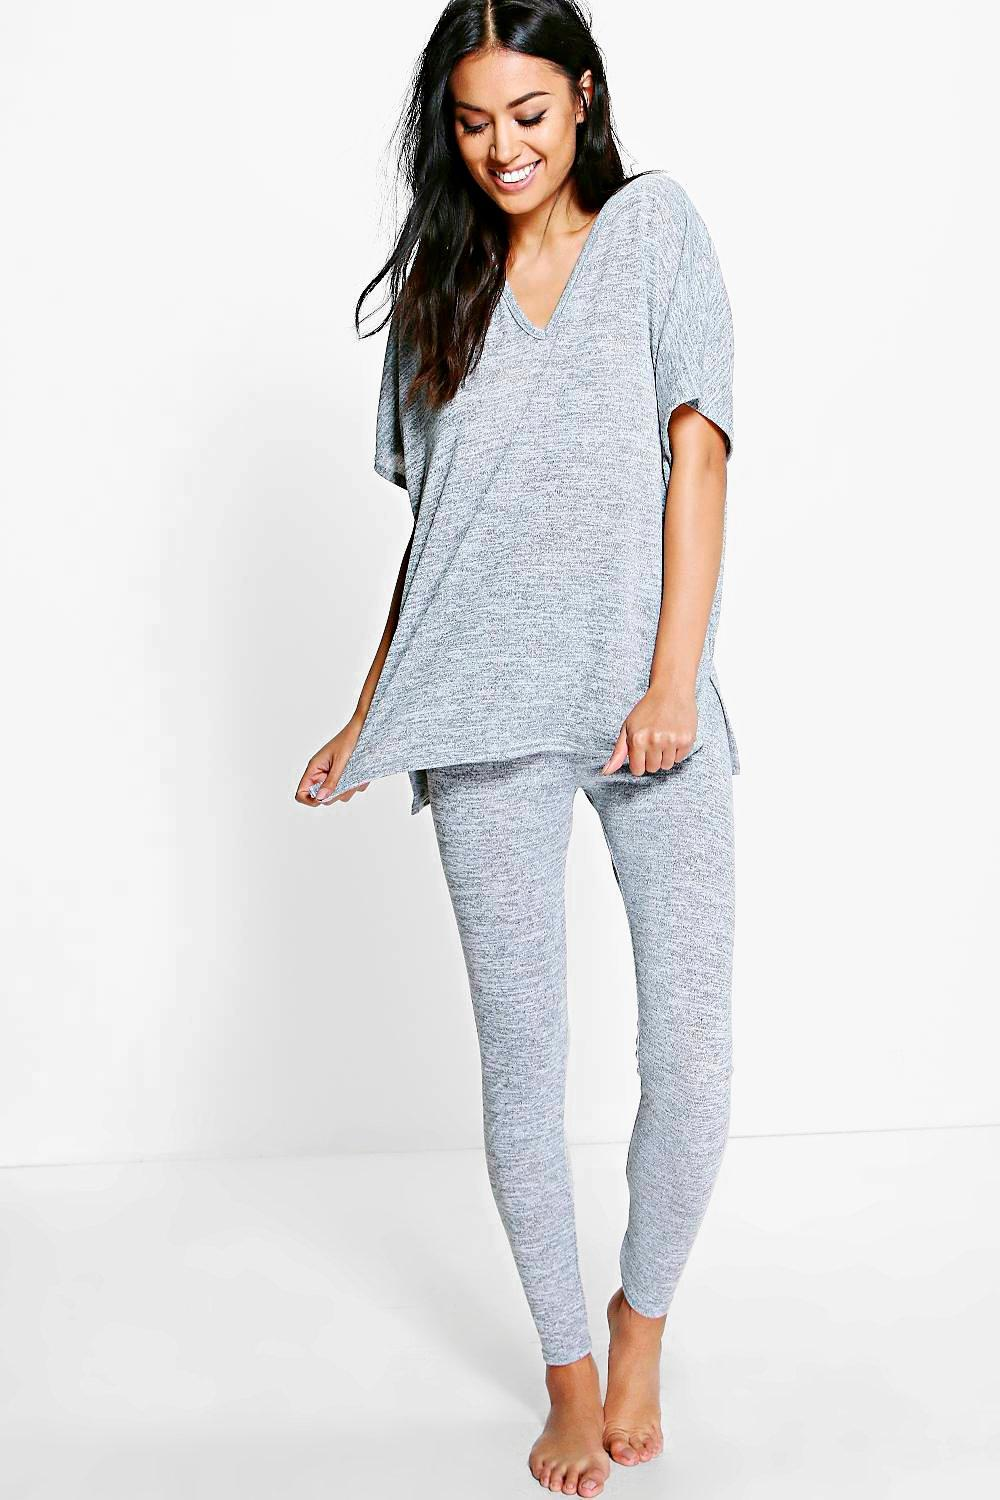 Product Features This tunic sweatshirt can be worn with leggings, high heels,boots etc.